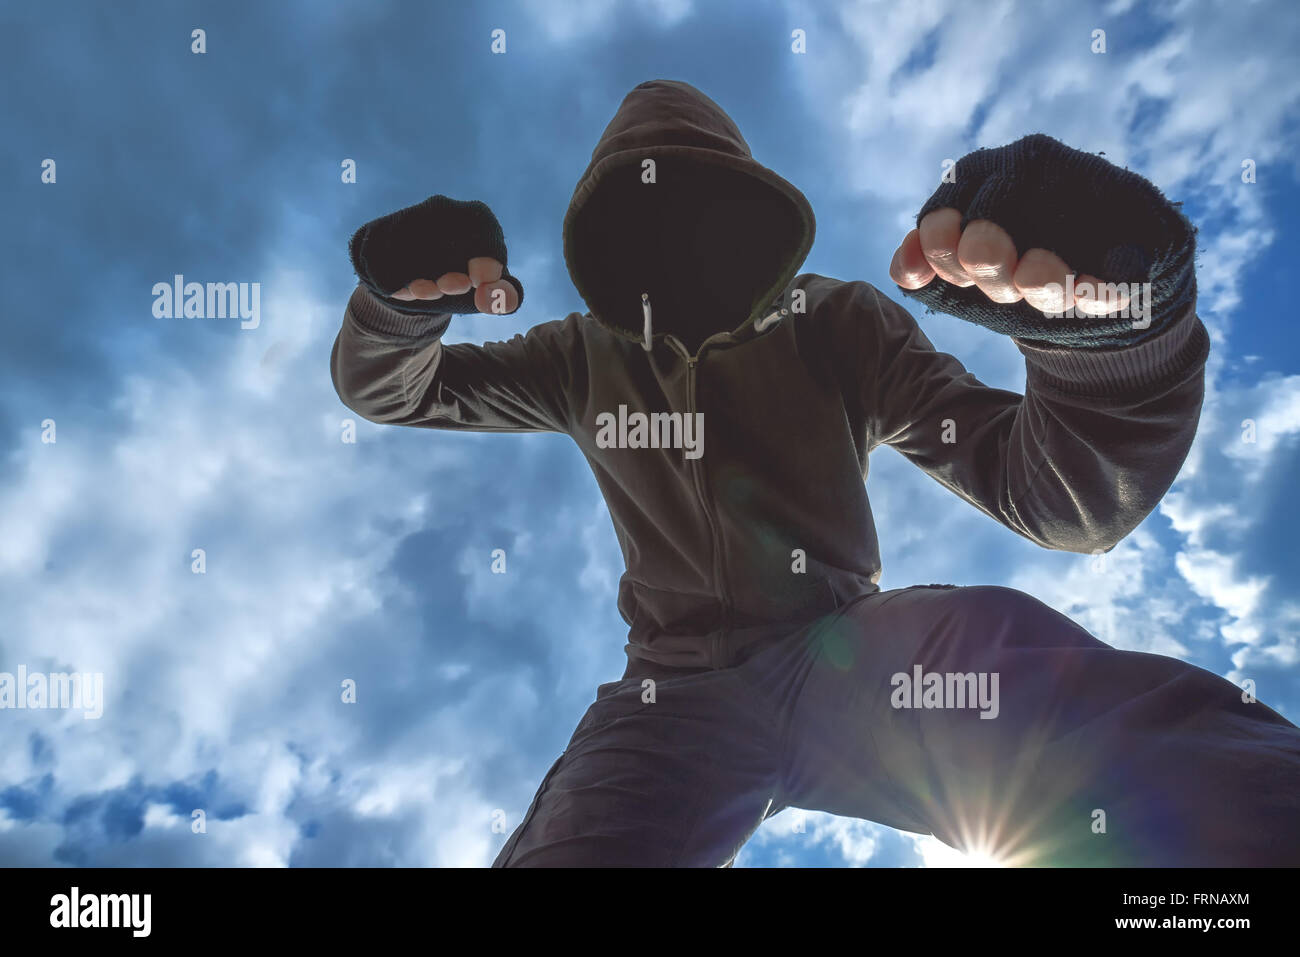 Violent attack, unrecognizable hooded male criminal kicking and punching victim on the street. - Stock Image